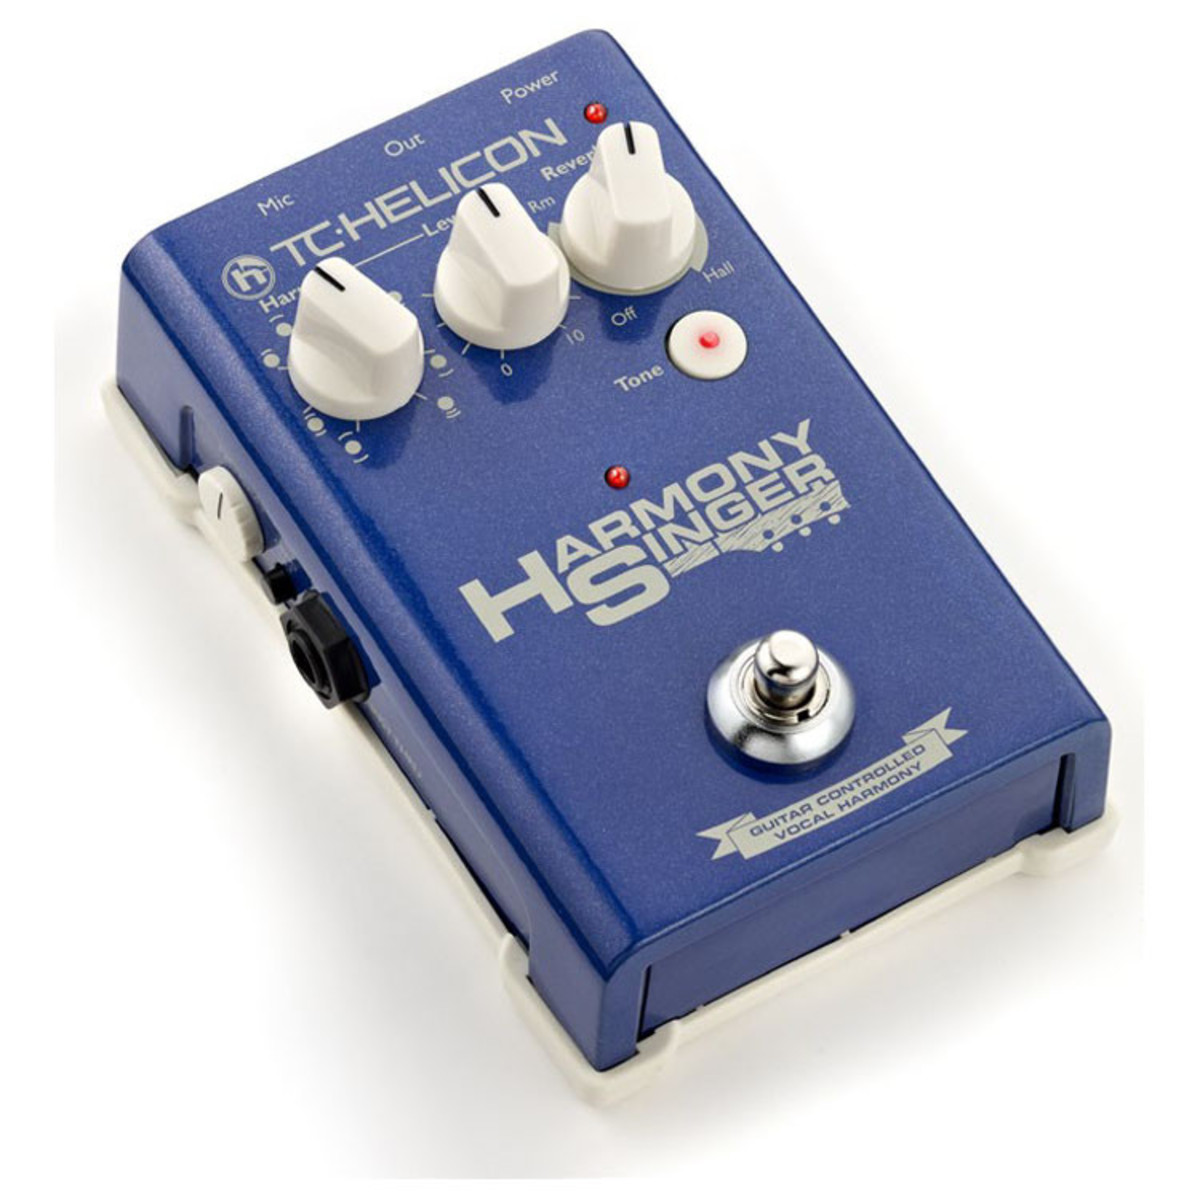 tc helicon harmony singer vocal effects pedal at gear4music. Black Bedroom Furniture Sets. Home Design Ideas